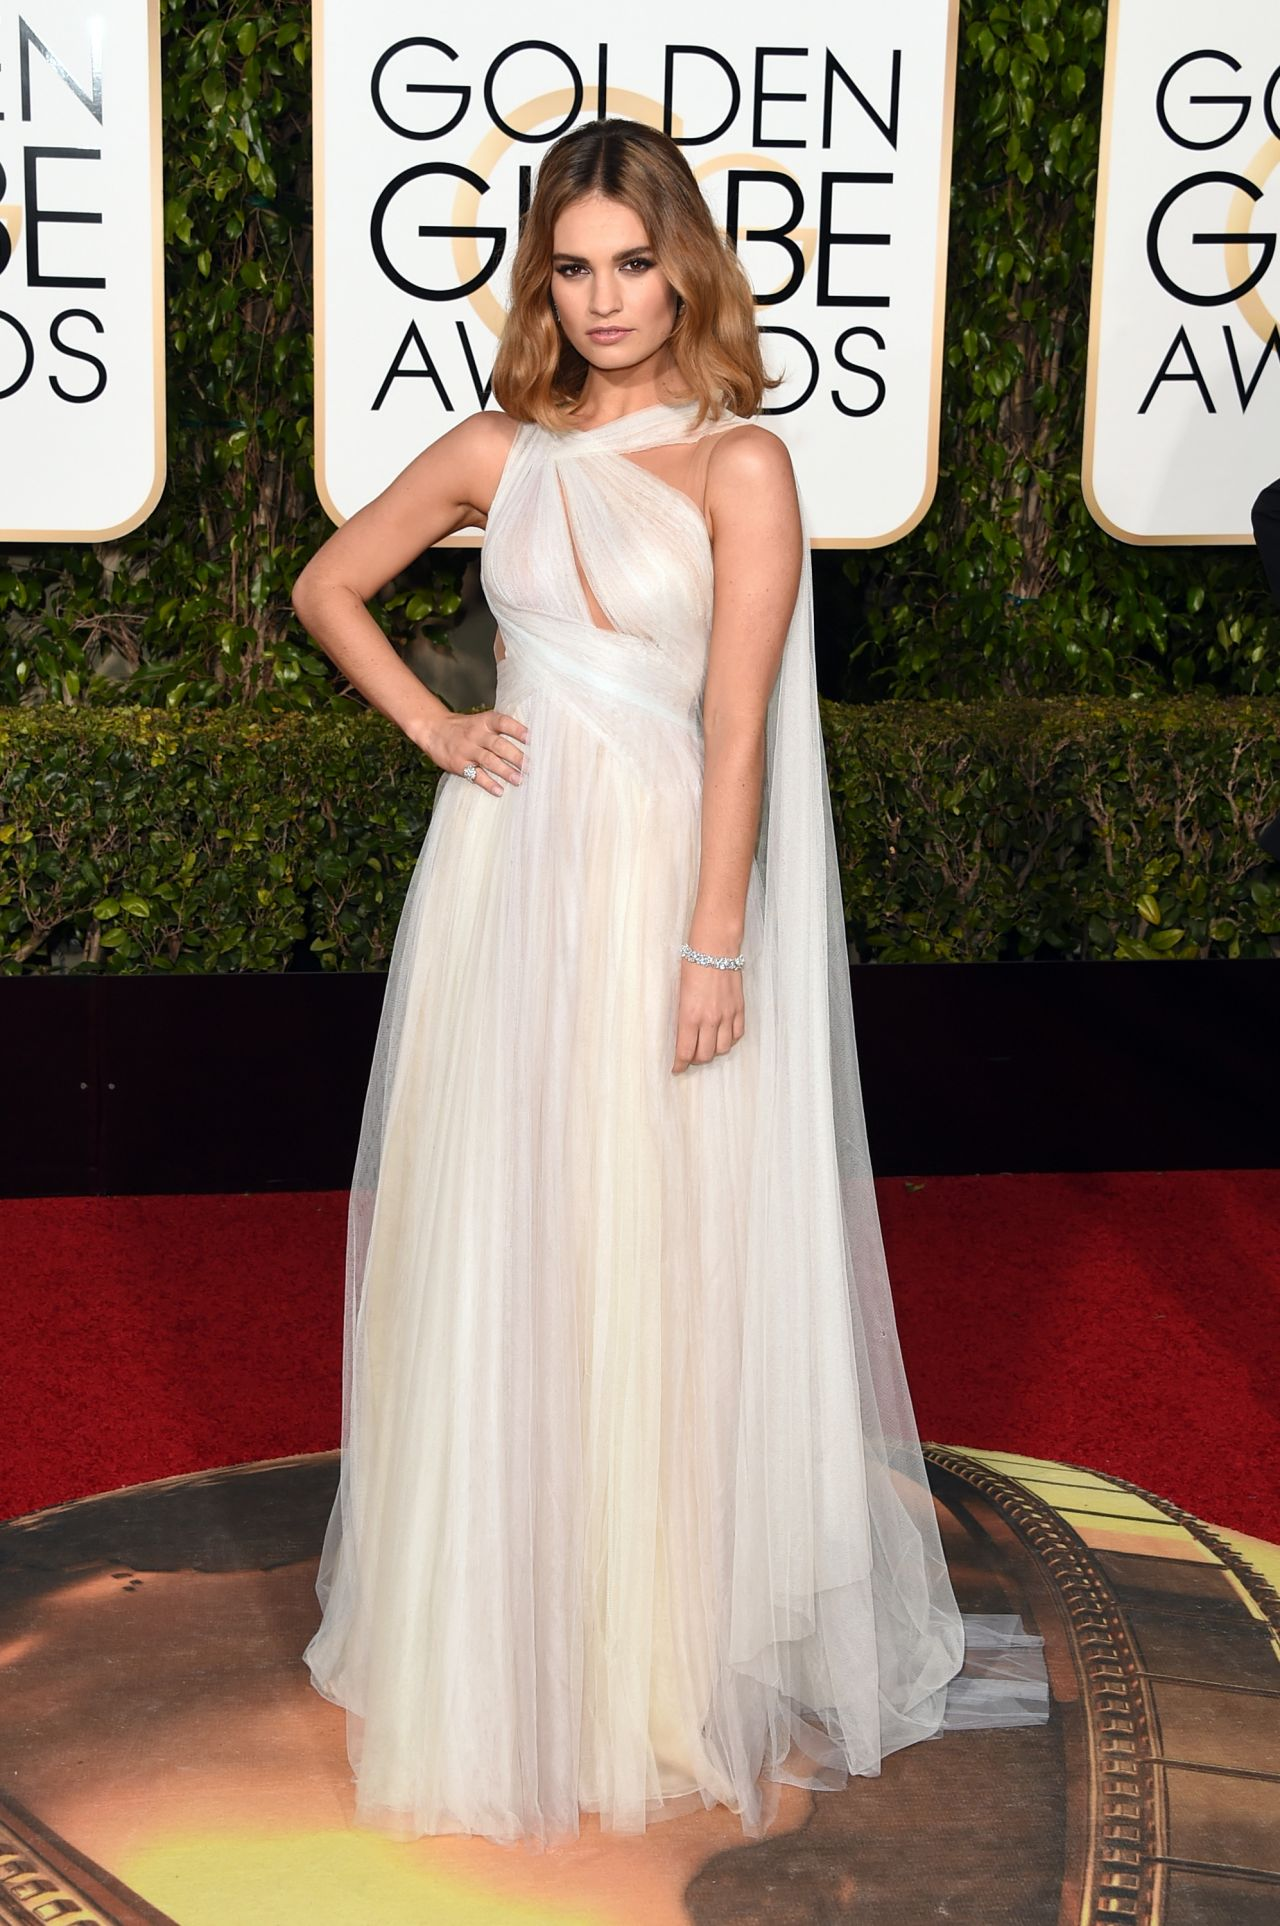 lily-james-2016-golden-globe-awards-in-beverly-hills-1